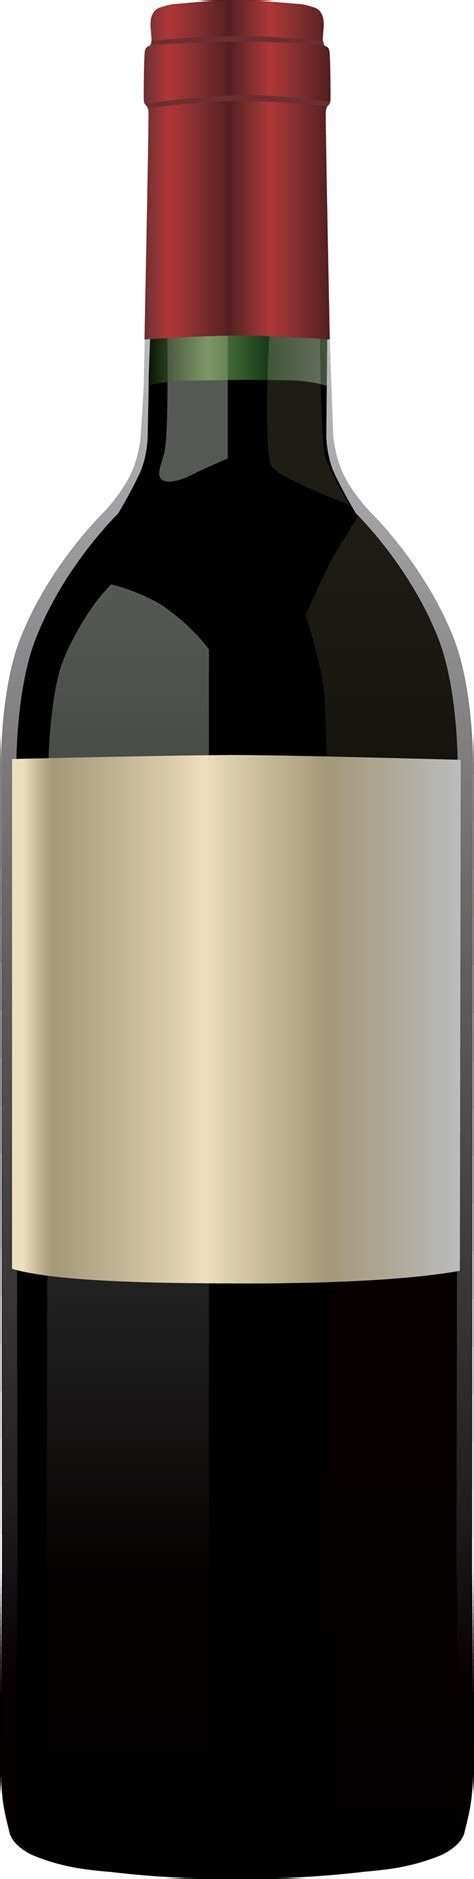 Red Wine Bottle   Free Vector